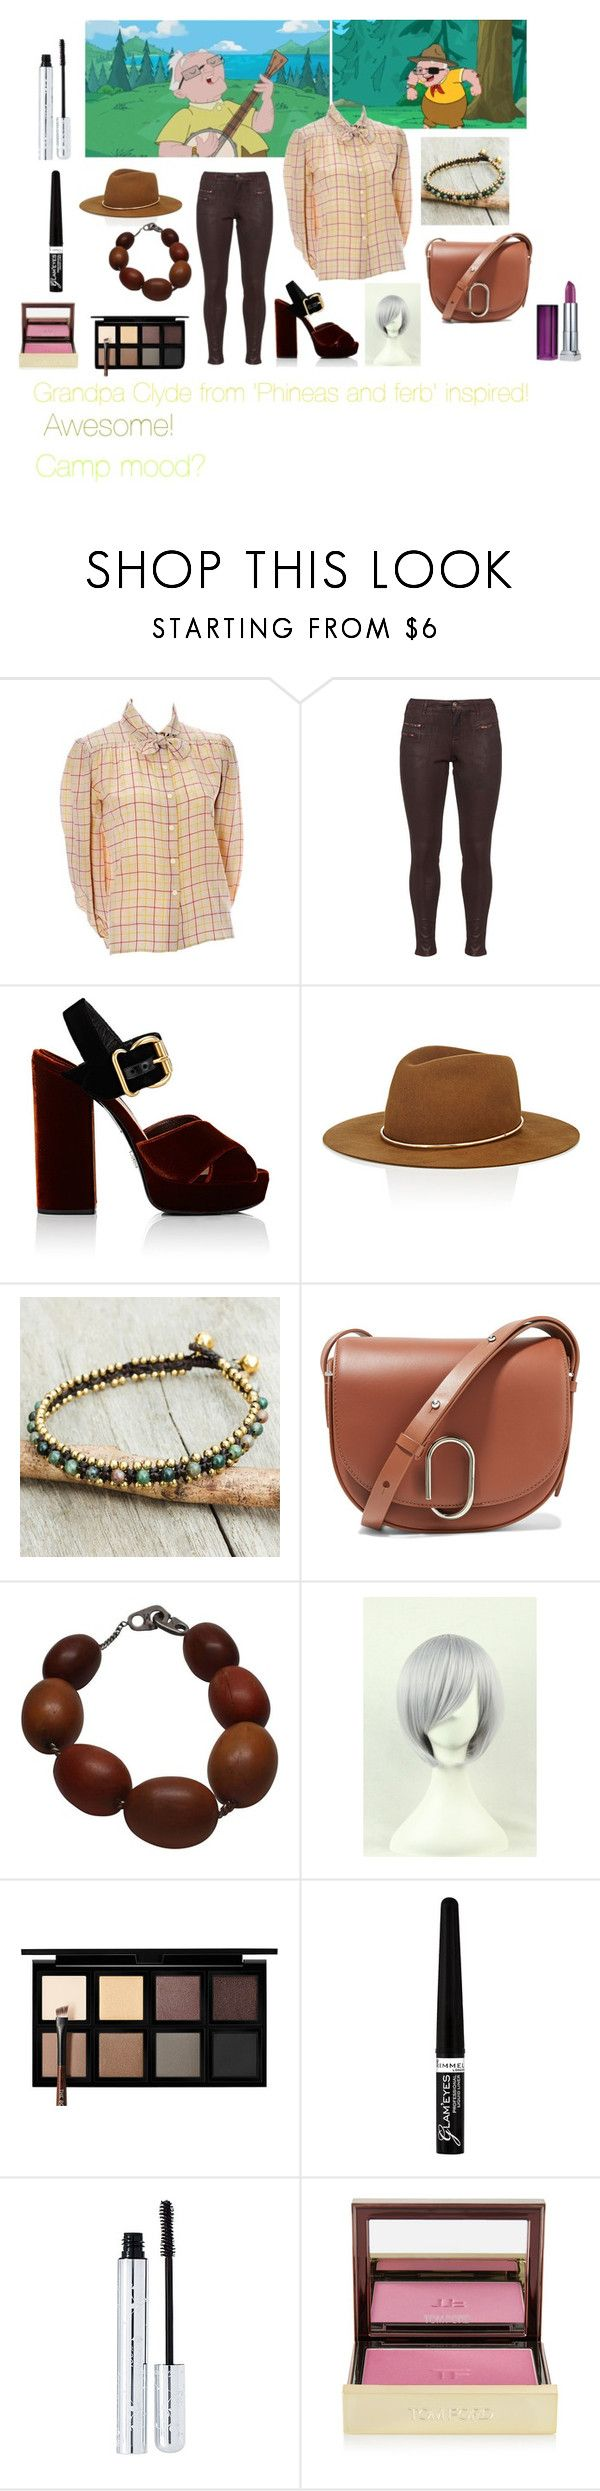 """For Scarlett (friend) - Scarlett's ideal wardrobe by me: Grandpa Clyde from 'Phineas and ferb' inspired!"" by sarah-m-smith ❤ liked on Polyvore featuring Valentino, Zizzi, Prada, Janessa Leone, NOVICA, 3.1 Phillip Lim, Patricia von Musulin, Down to Earth, Rimmel and 100% Pure"